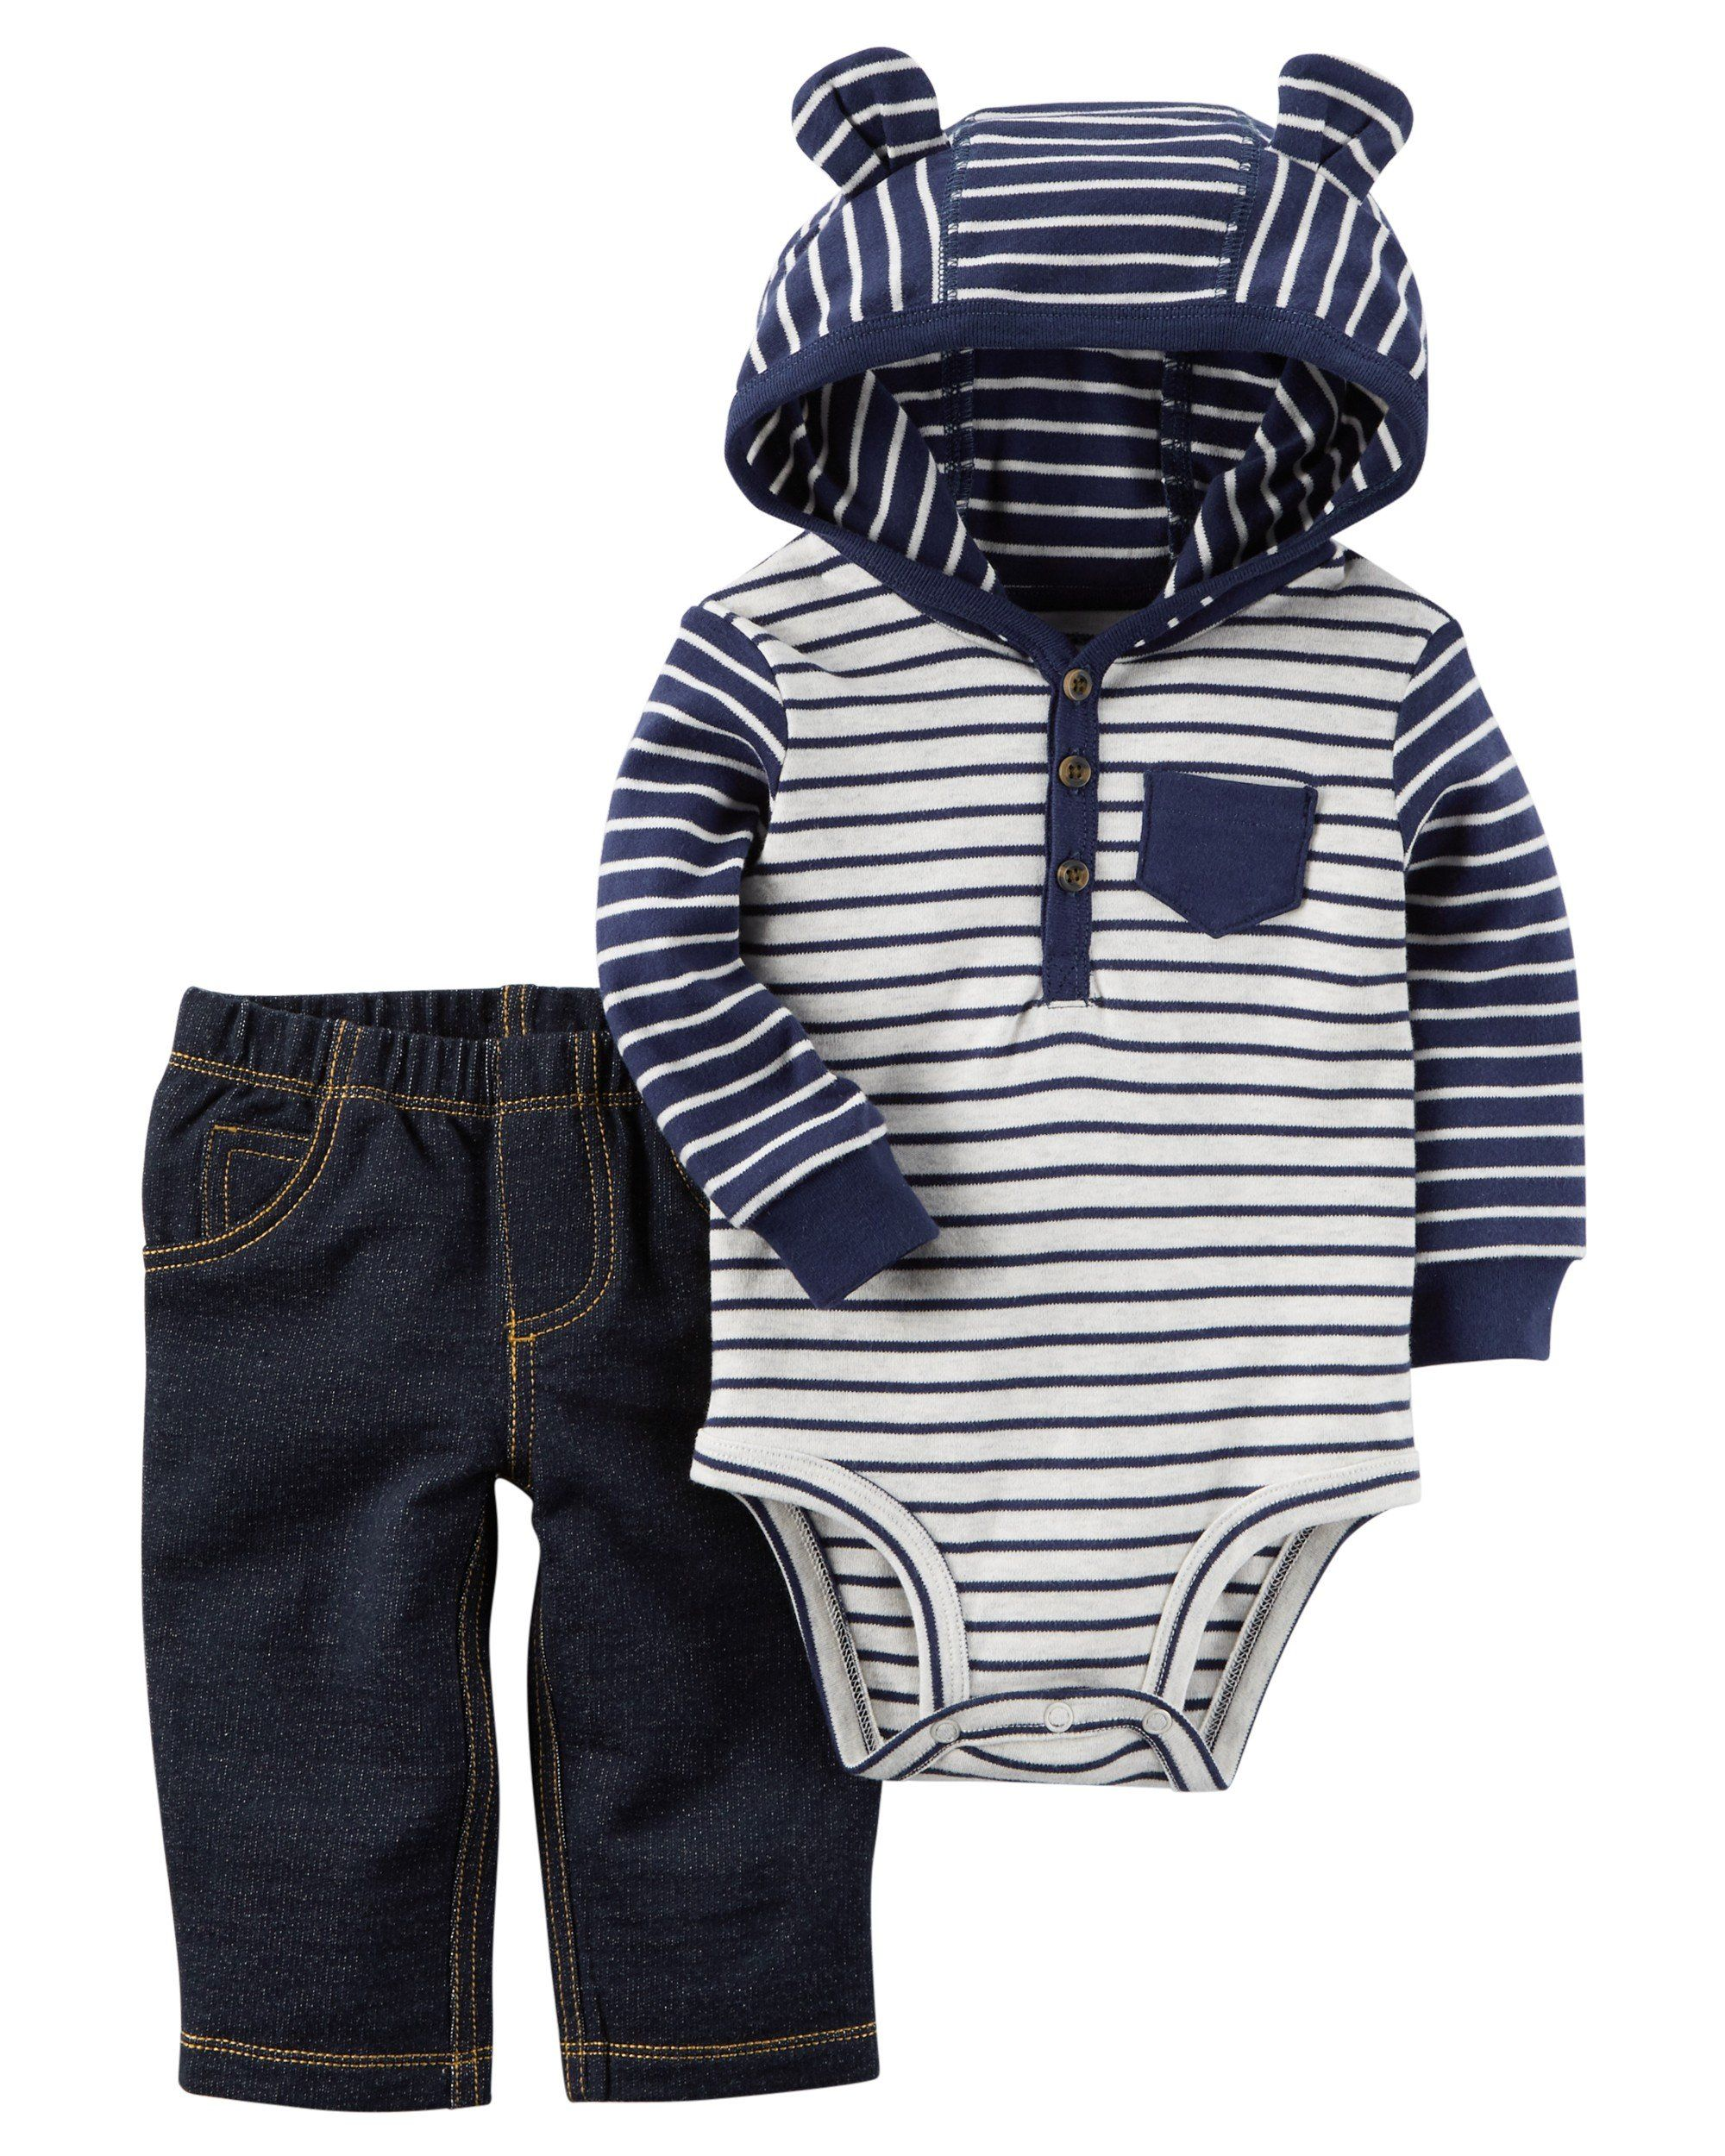 3030db738af0 Carters Baby Boys 2 Piece Hooded Bodysuit Pants Set 24 Months *** Click  image for more details. (This is an affiliate link)